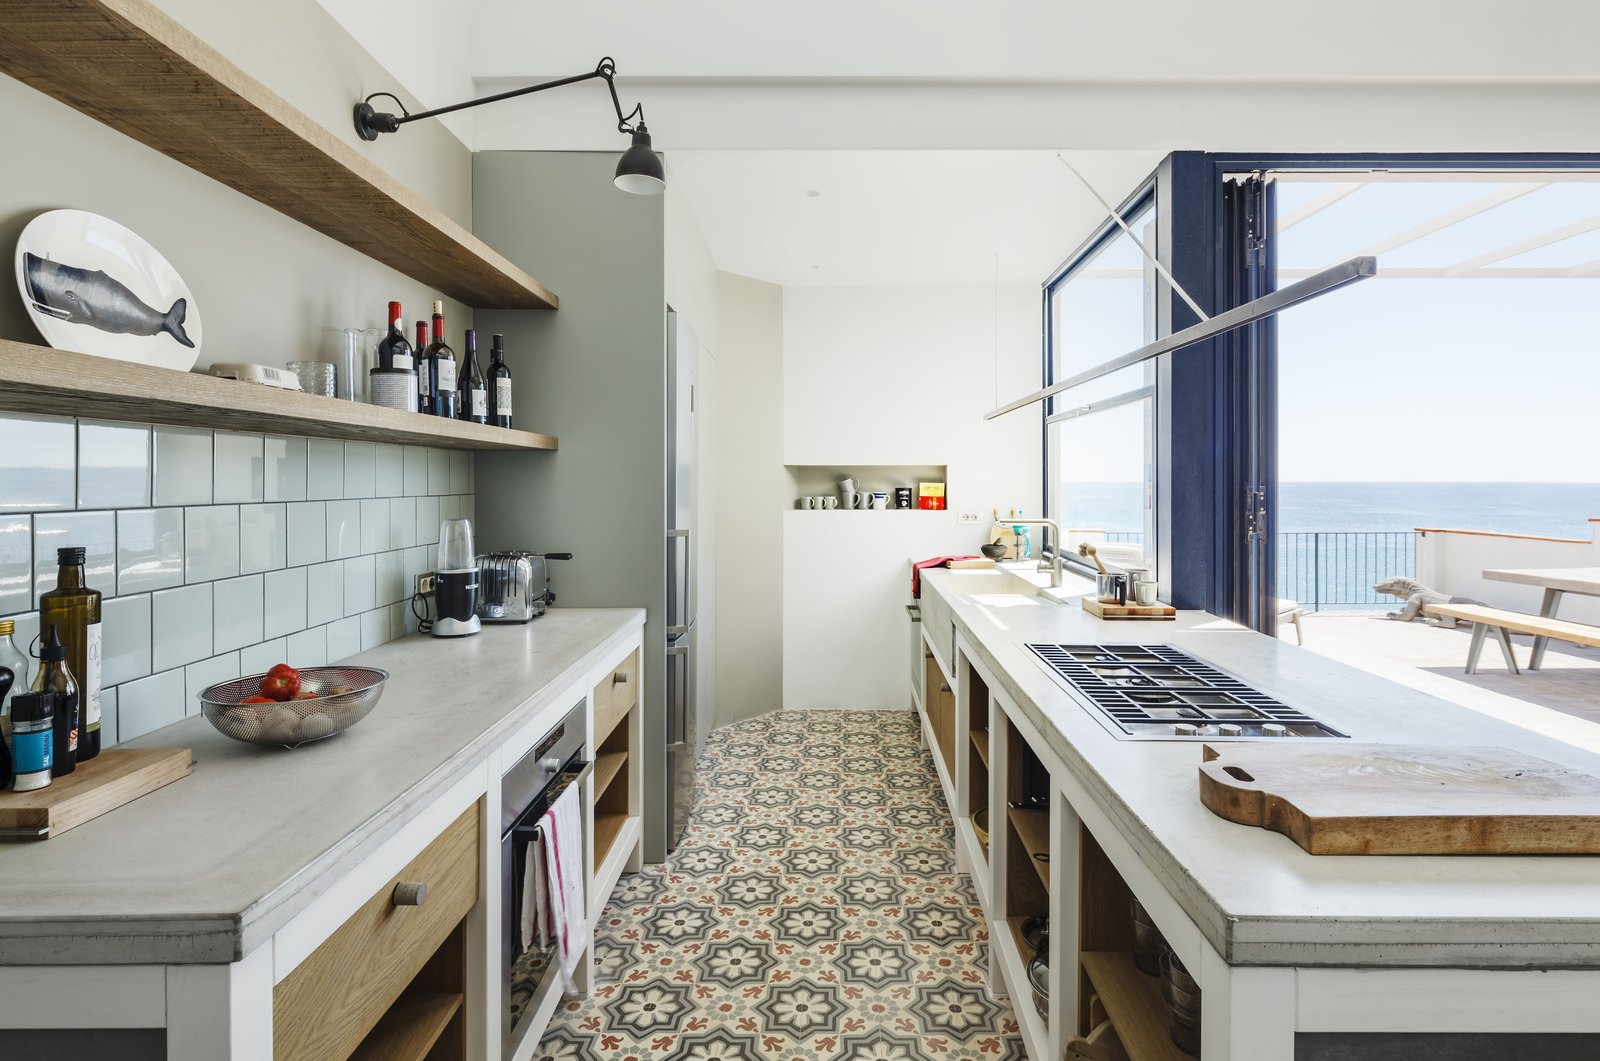 Tagged: Kitchen, Concrete Counter, Ceramic Tile Floor, Refrigerator, Wall Oven, Porcelain Tile Backsplashe, Wall Lighting, Range, and Drop In Sink.  Photo 8 of 16 in A Careful Renovation Brings New Life to a Family's Heritage Home on the Spanish Coast